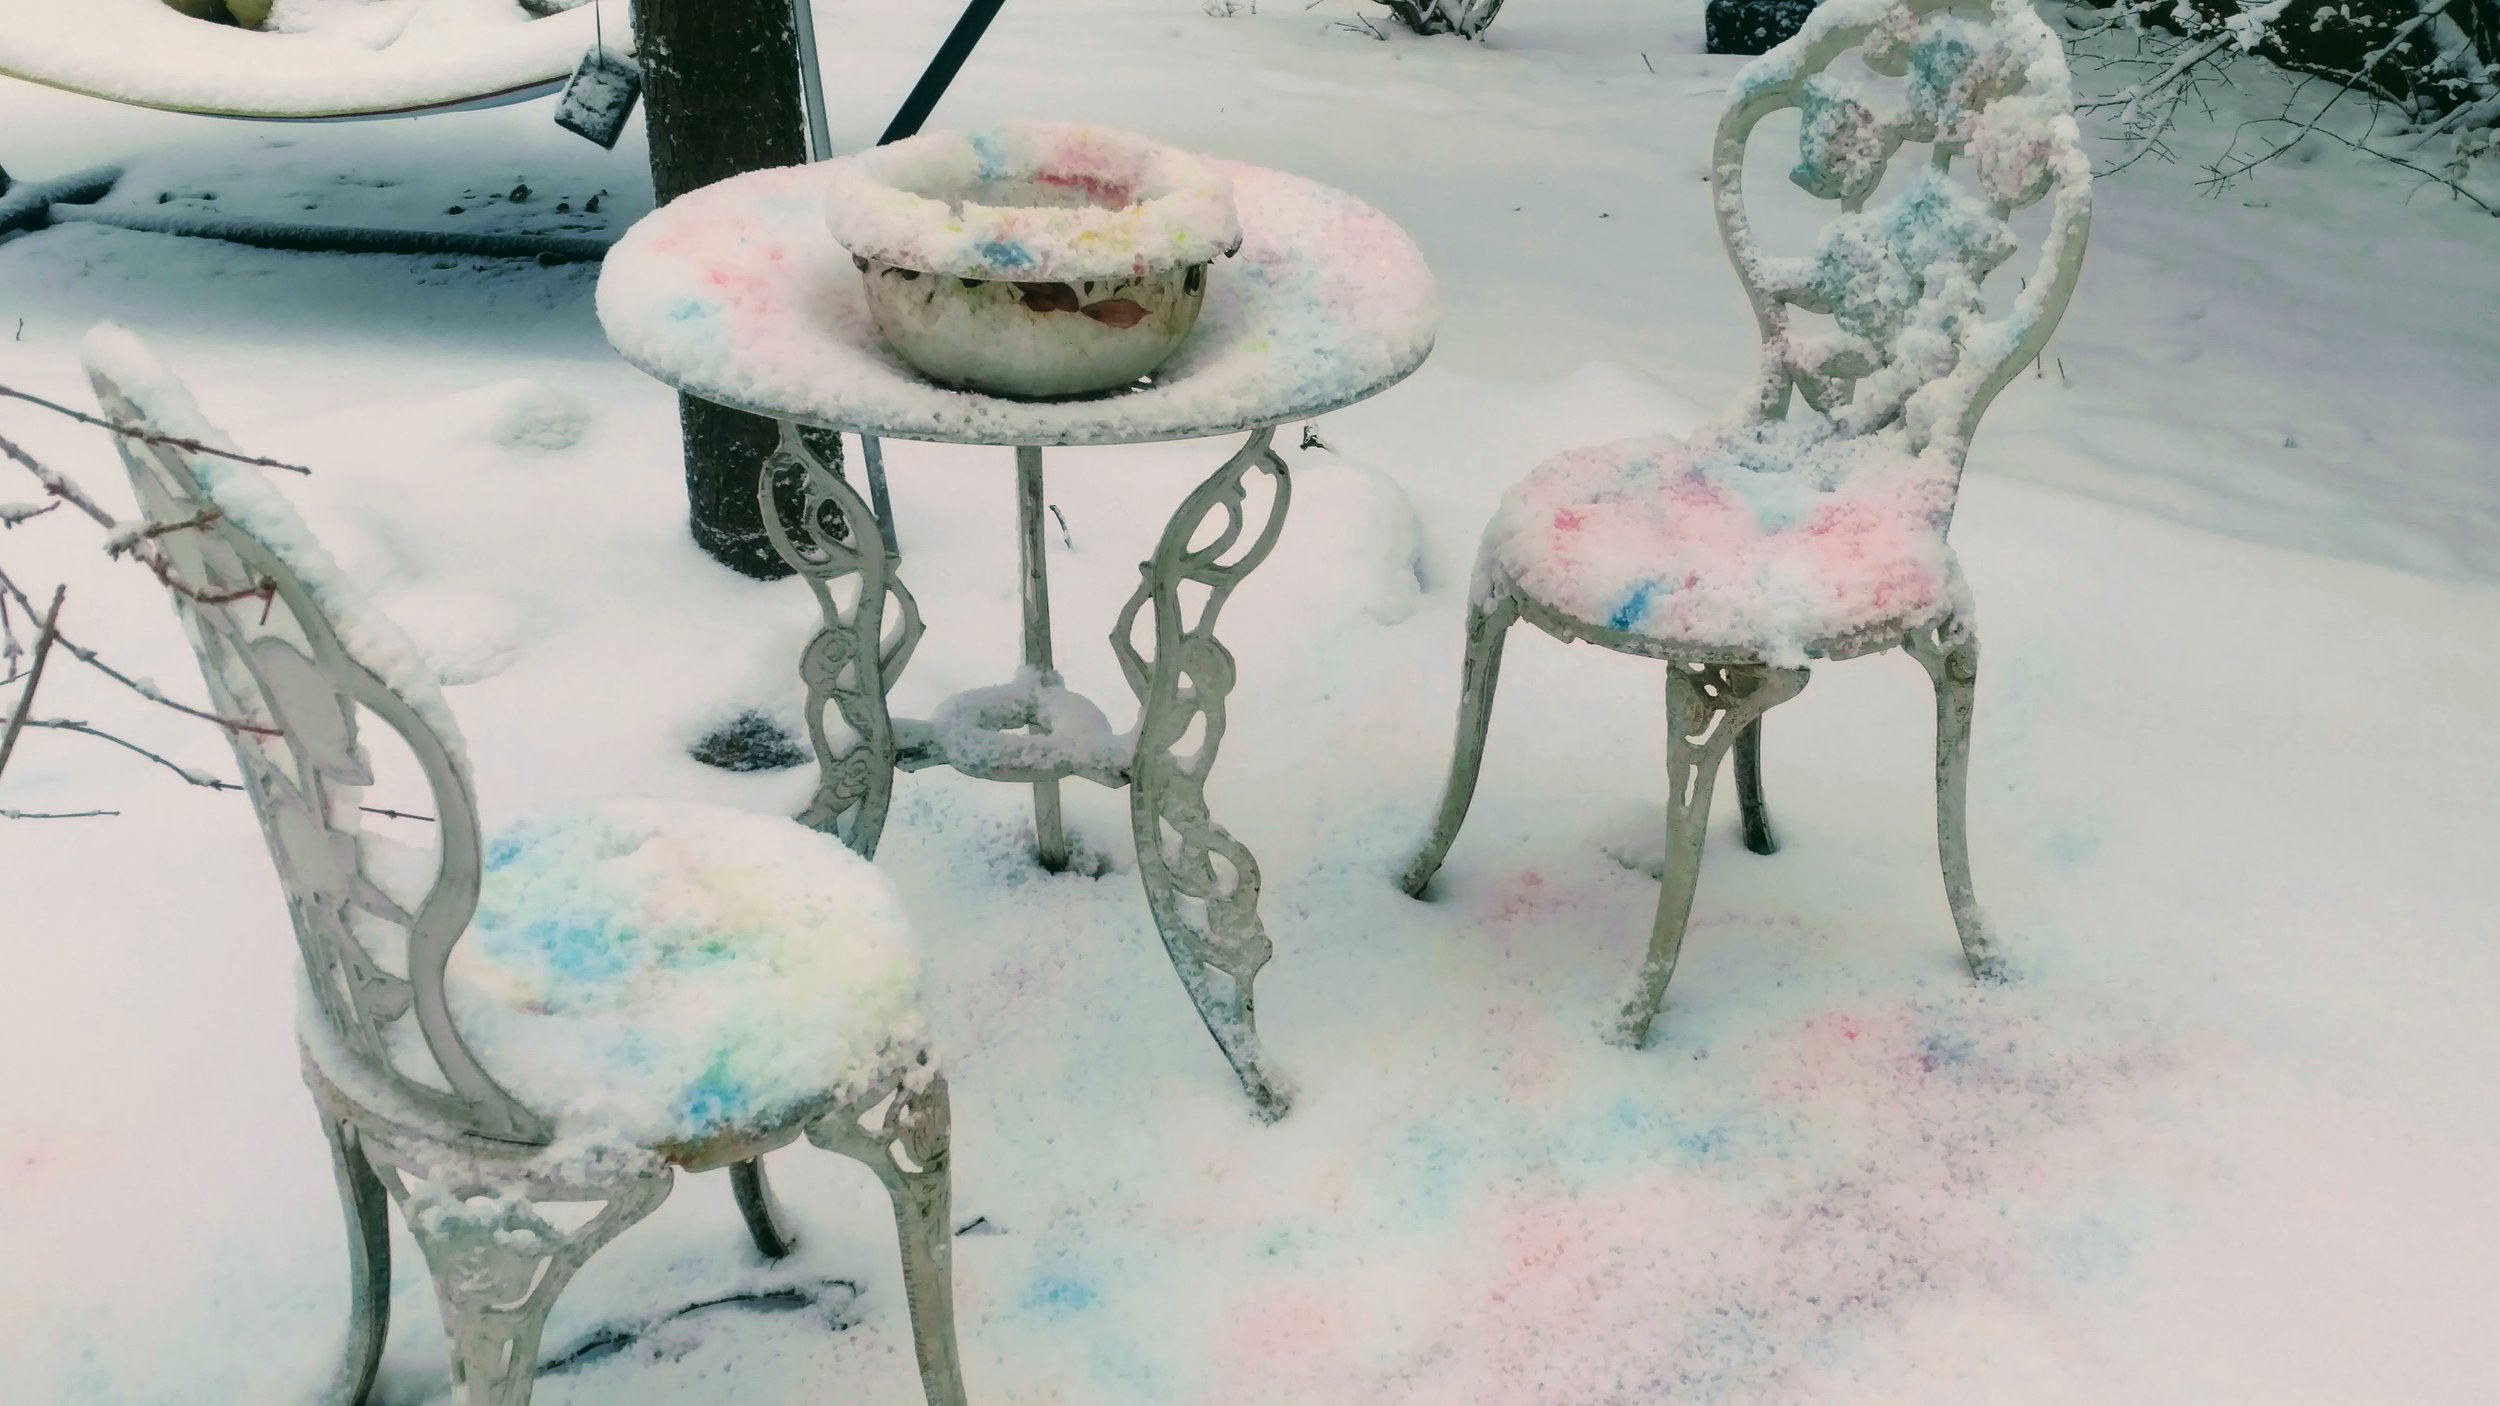 Painted snow.